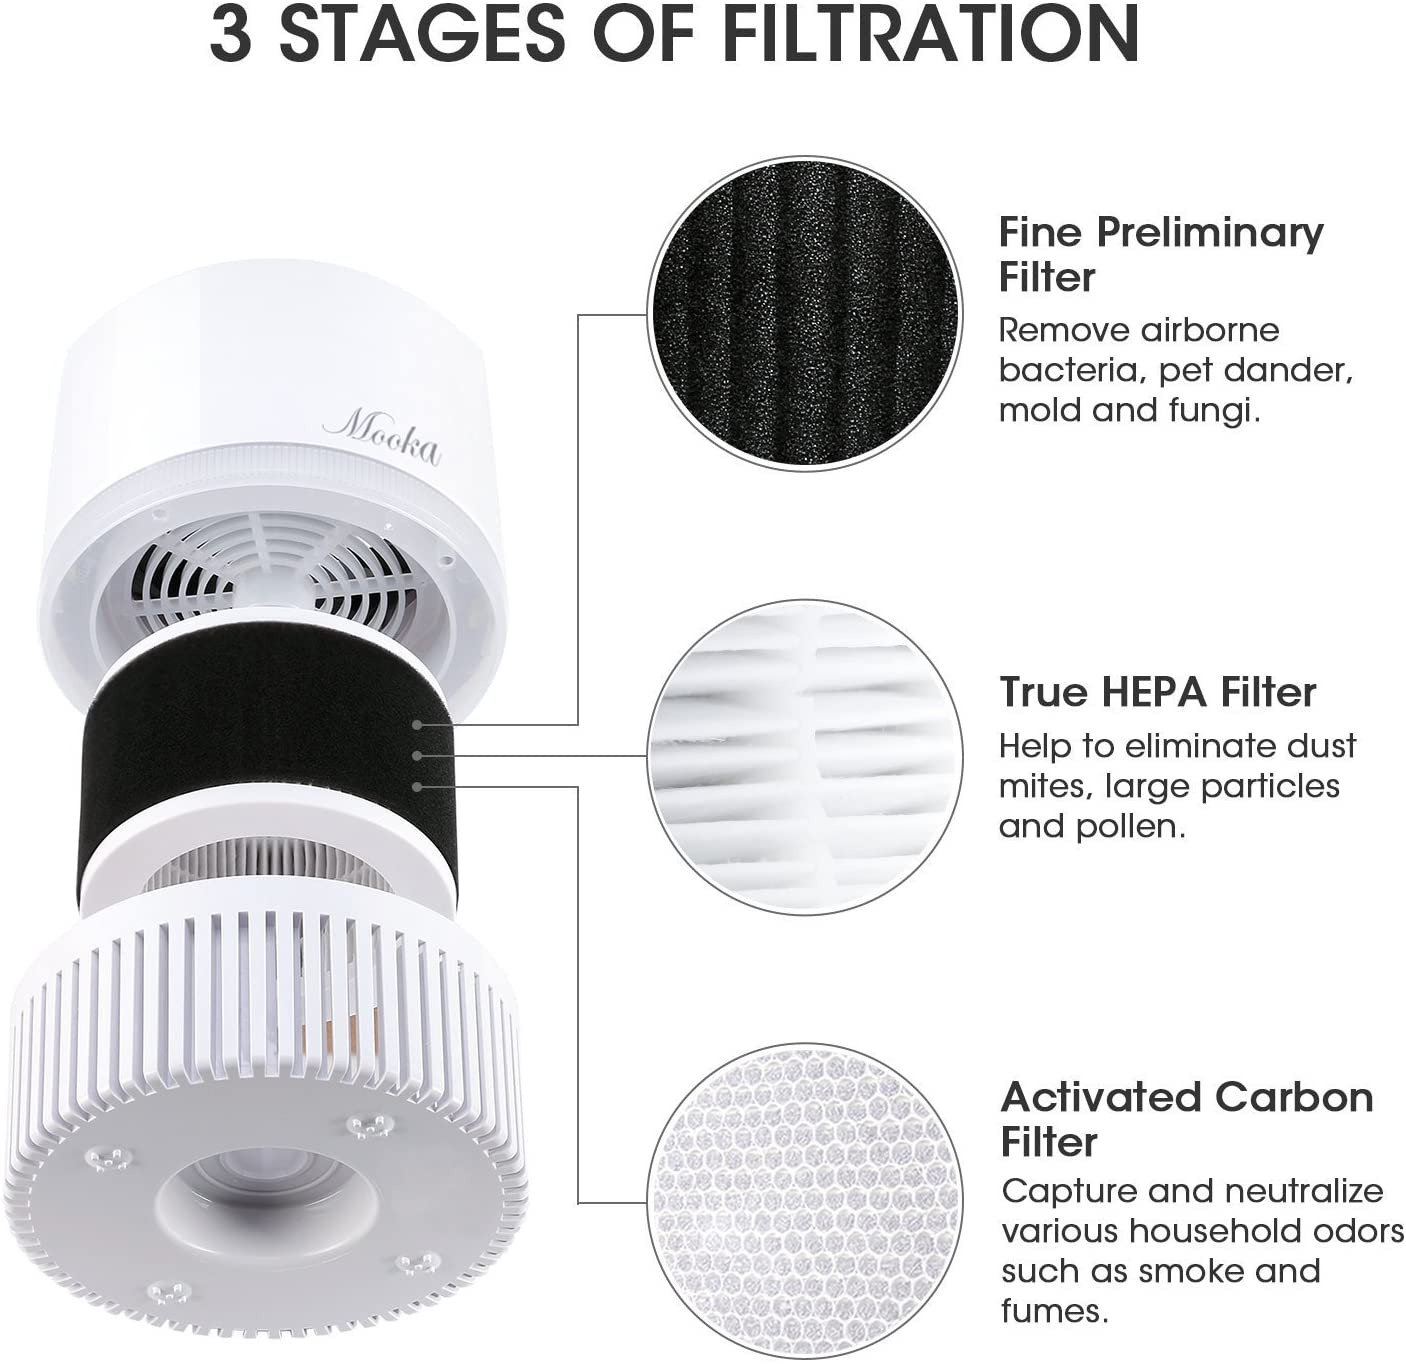 [US Direct] Original MOOKA 3-in-1 True HEPA Filter for Home, Air Cleaner for Bedroom & Office, Odor Eliminator for Allergies and Pets, Smoke, Dust, Mold, Available for